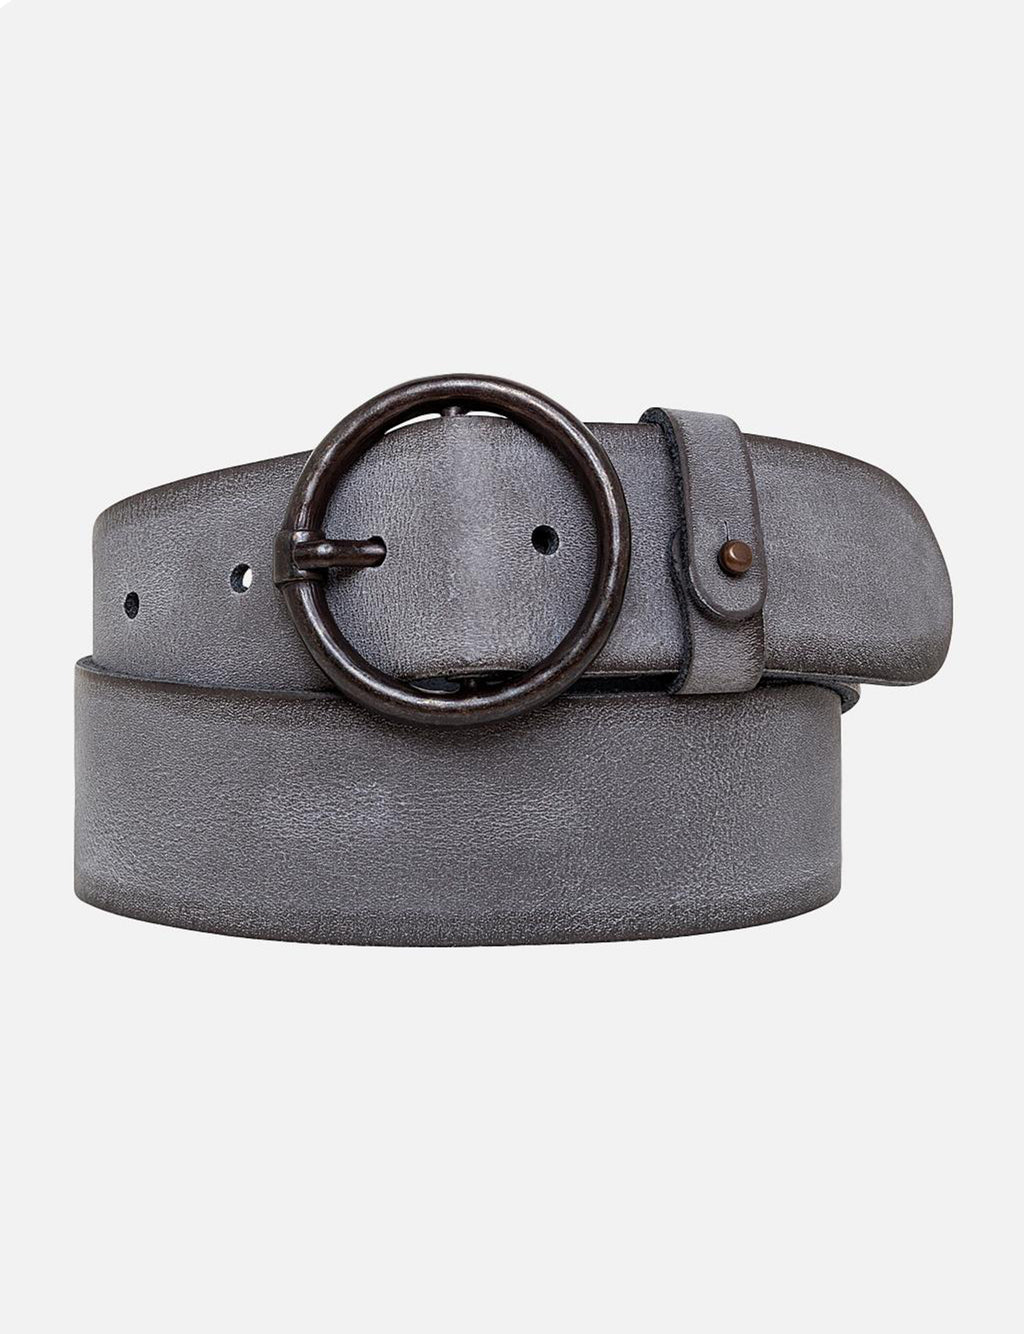 Amsterdam Heritage Pip Vintage Round Buckle Leather Belt in Grey